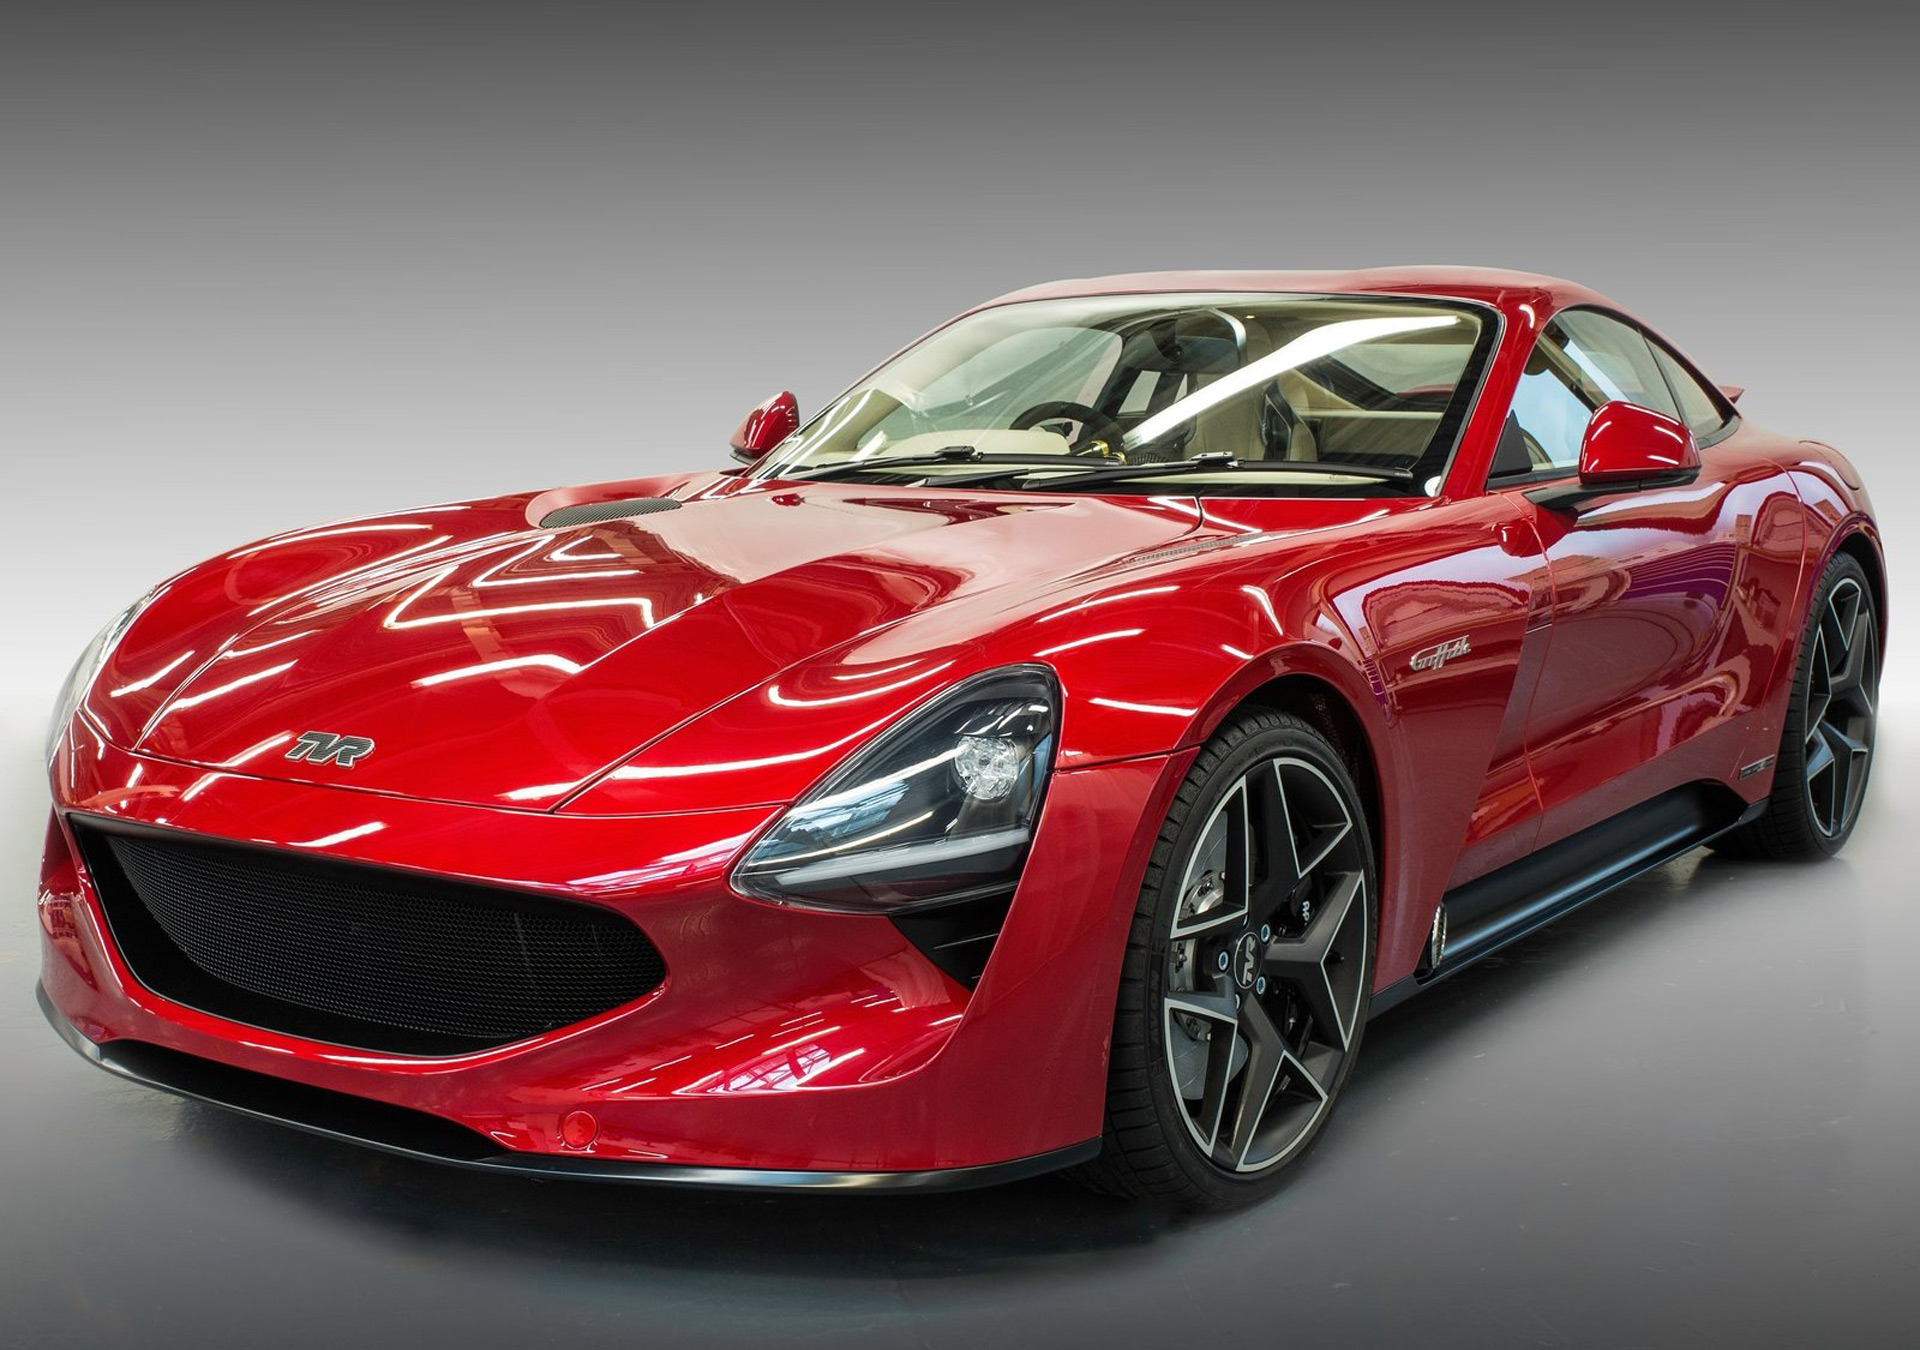 Tvr Returns With 500 Horsepower Griffith Sports Car